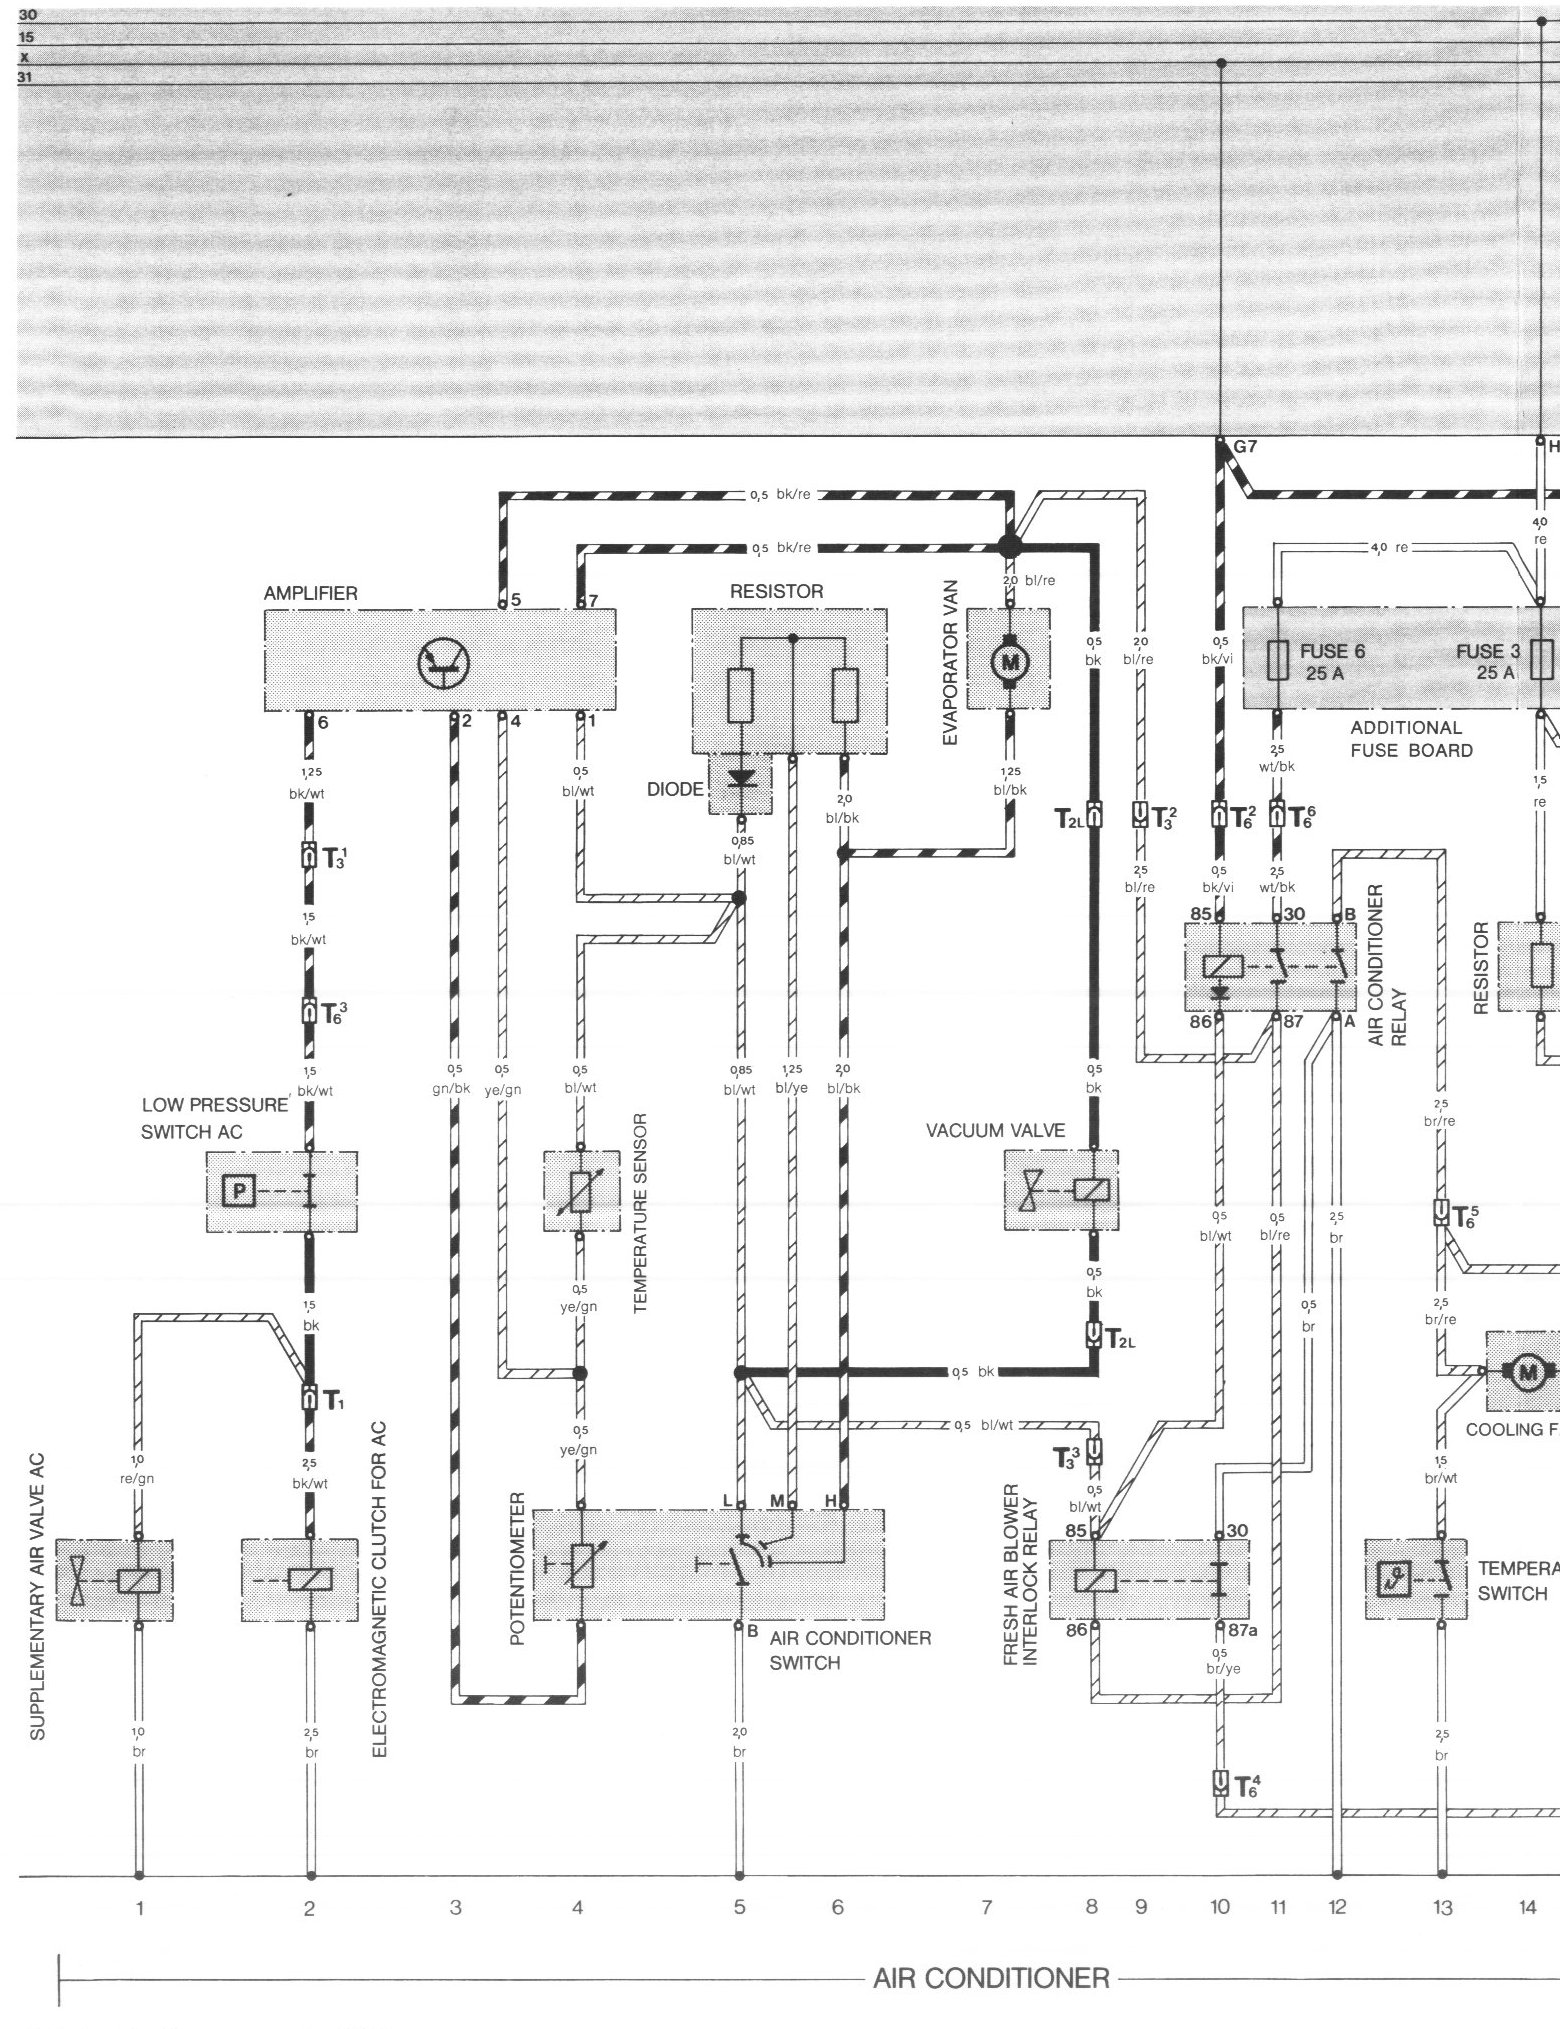 944_84_AC_1 porsche 944 wiring diagram pdf 1989 porshce 930 engine wiring makita 2703 switch wiring diagram at crackthecode.co